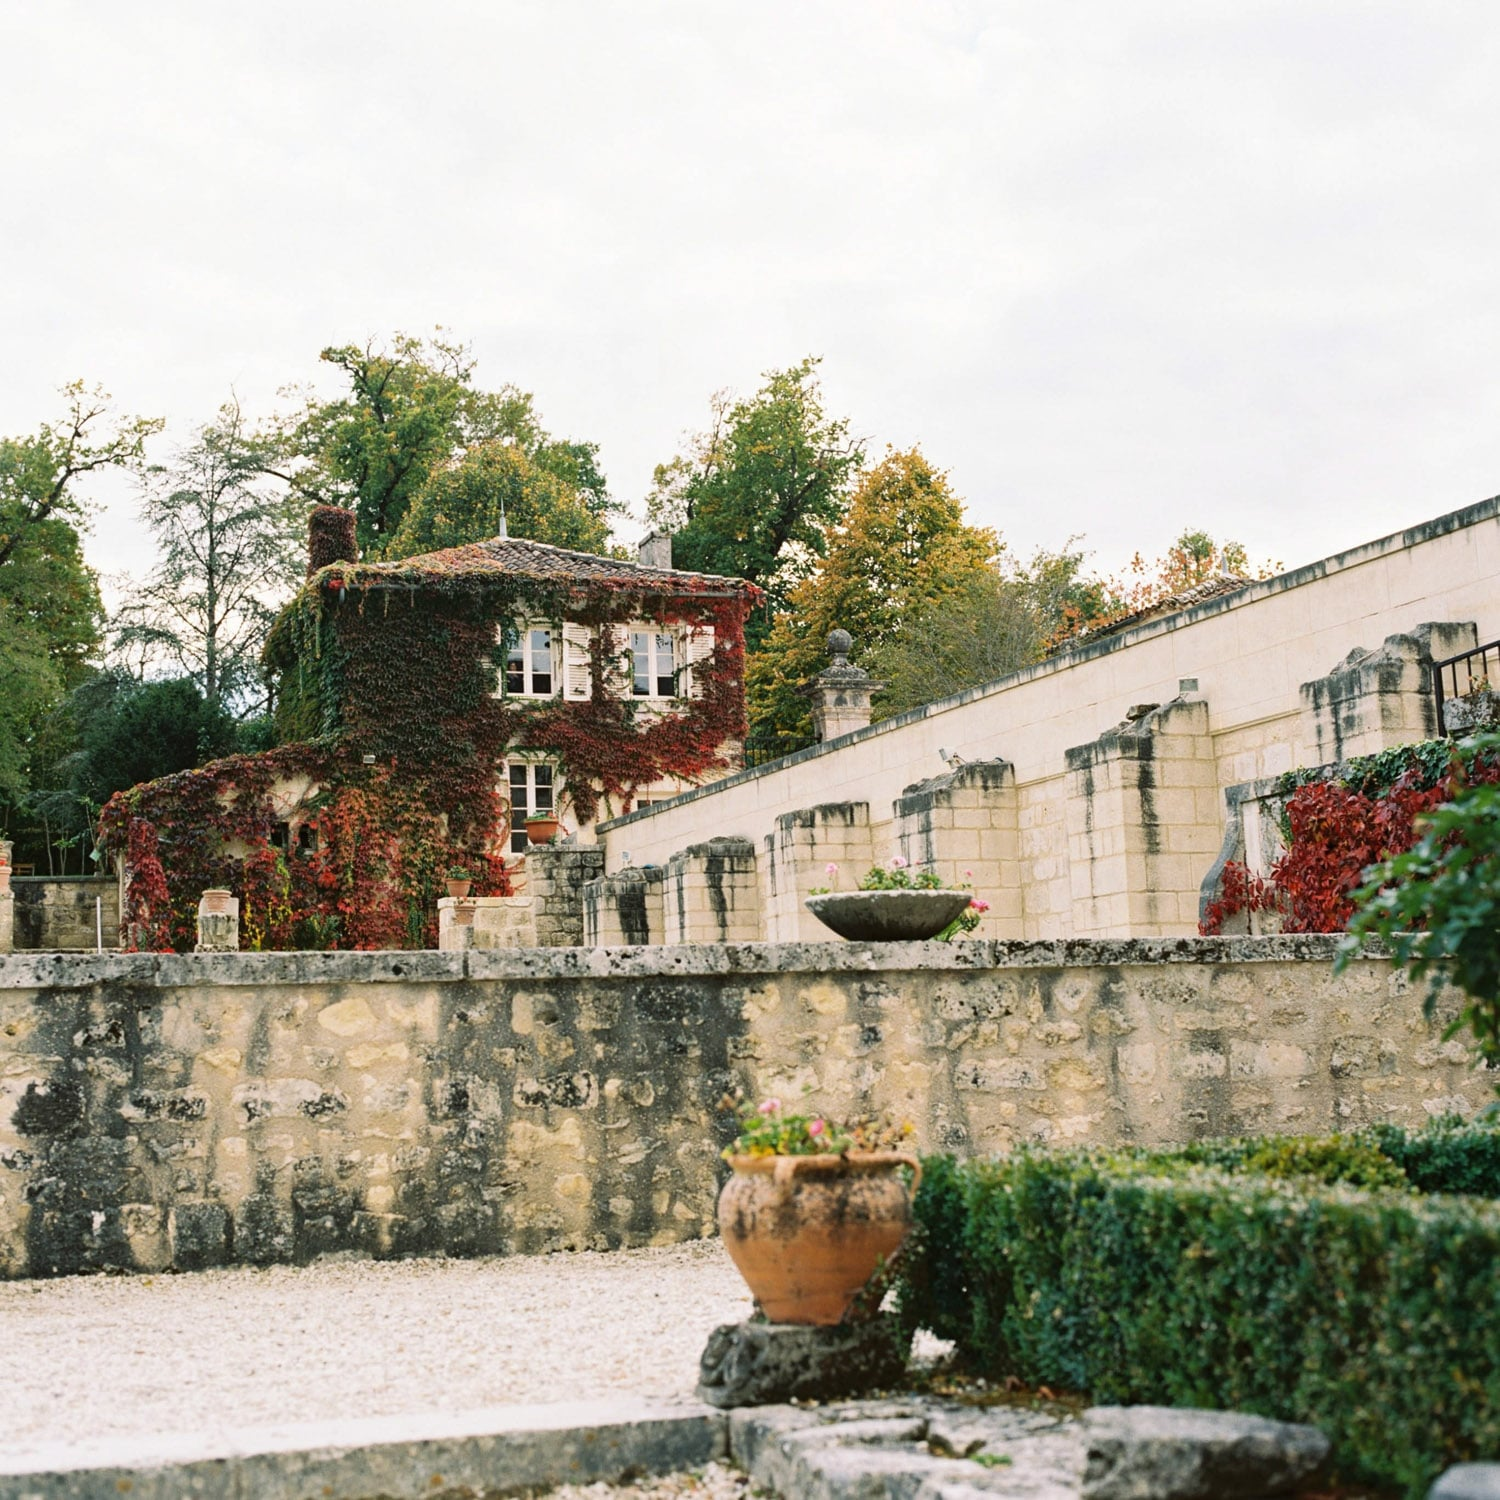 abbaye de Fontdouce, french old abbey